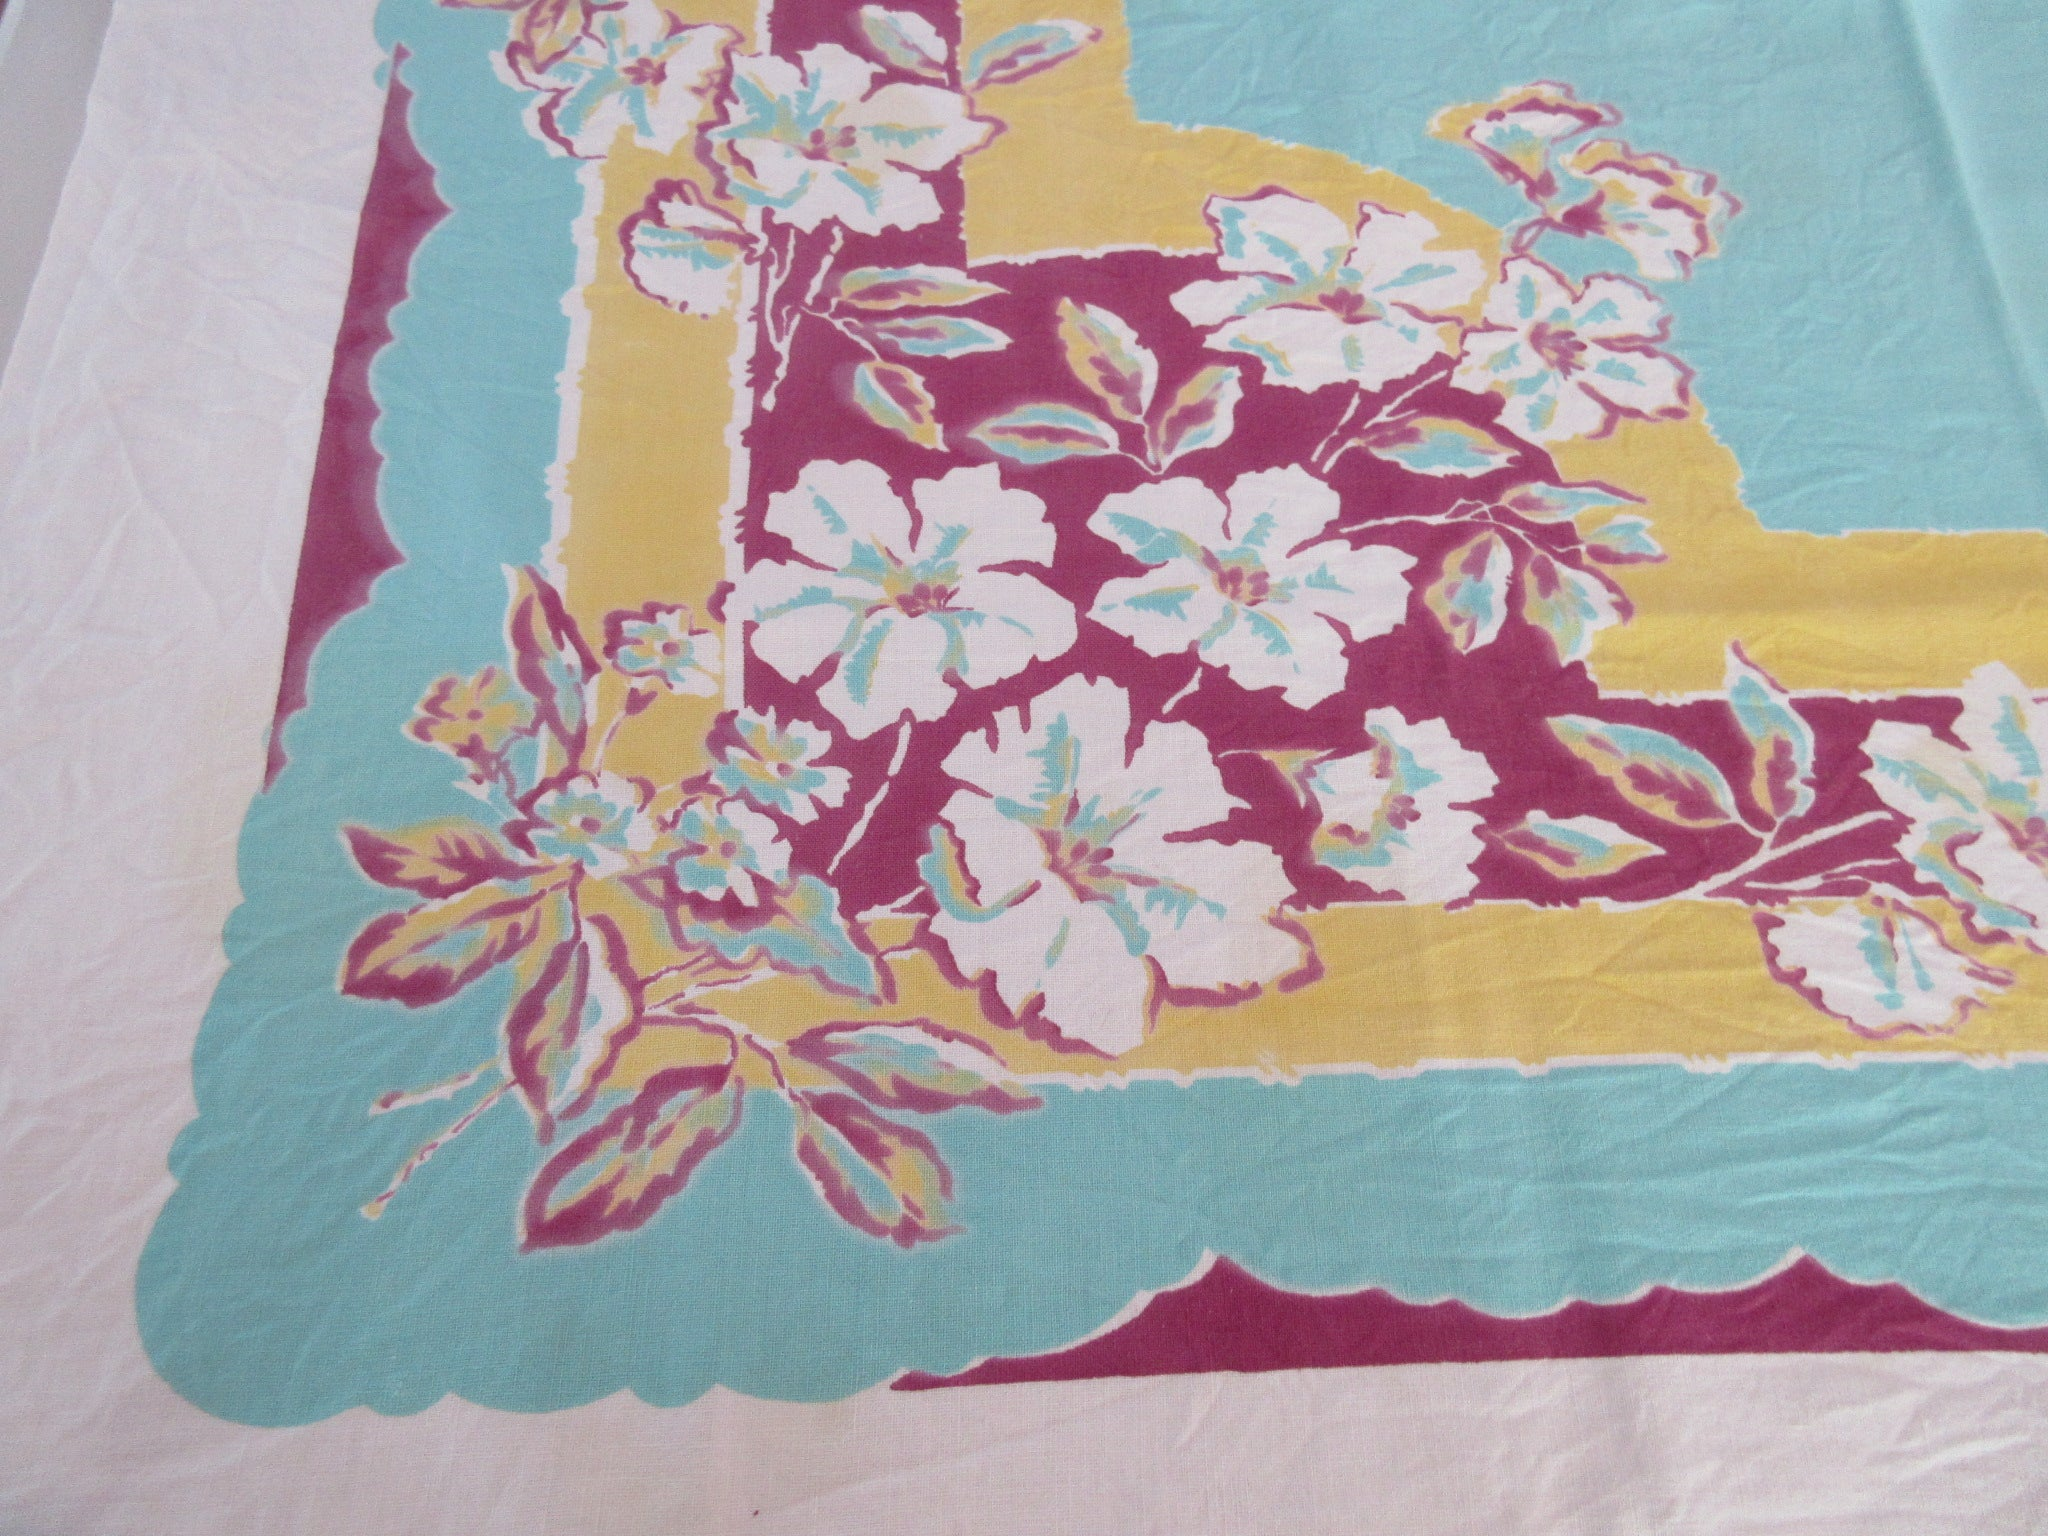 Bold Hibiscus on Magenta Aqua Gold Yellow Floral Vintage Printed Tablecloth (51 X 46)